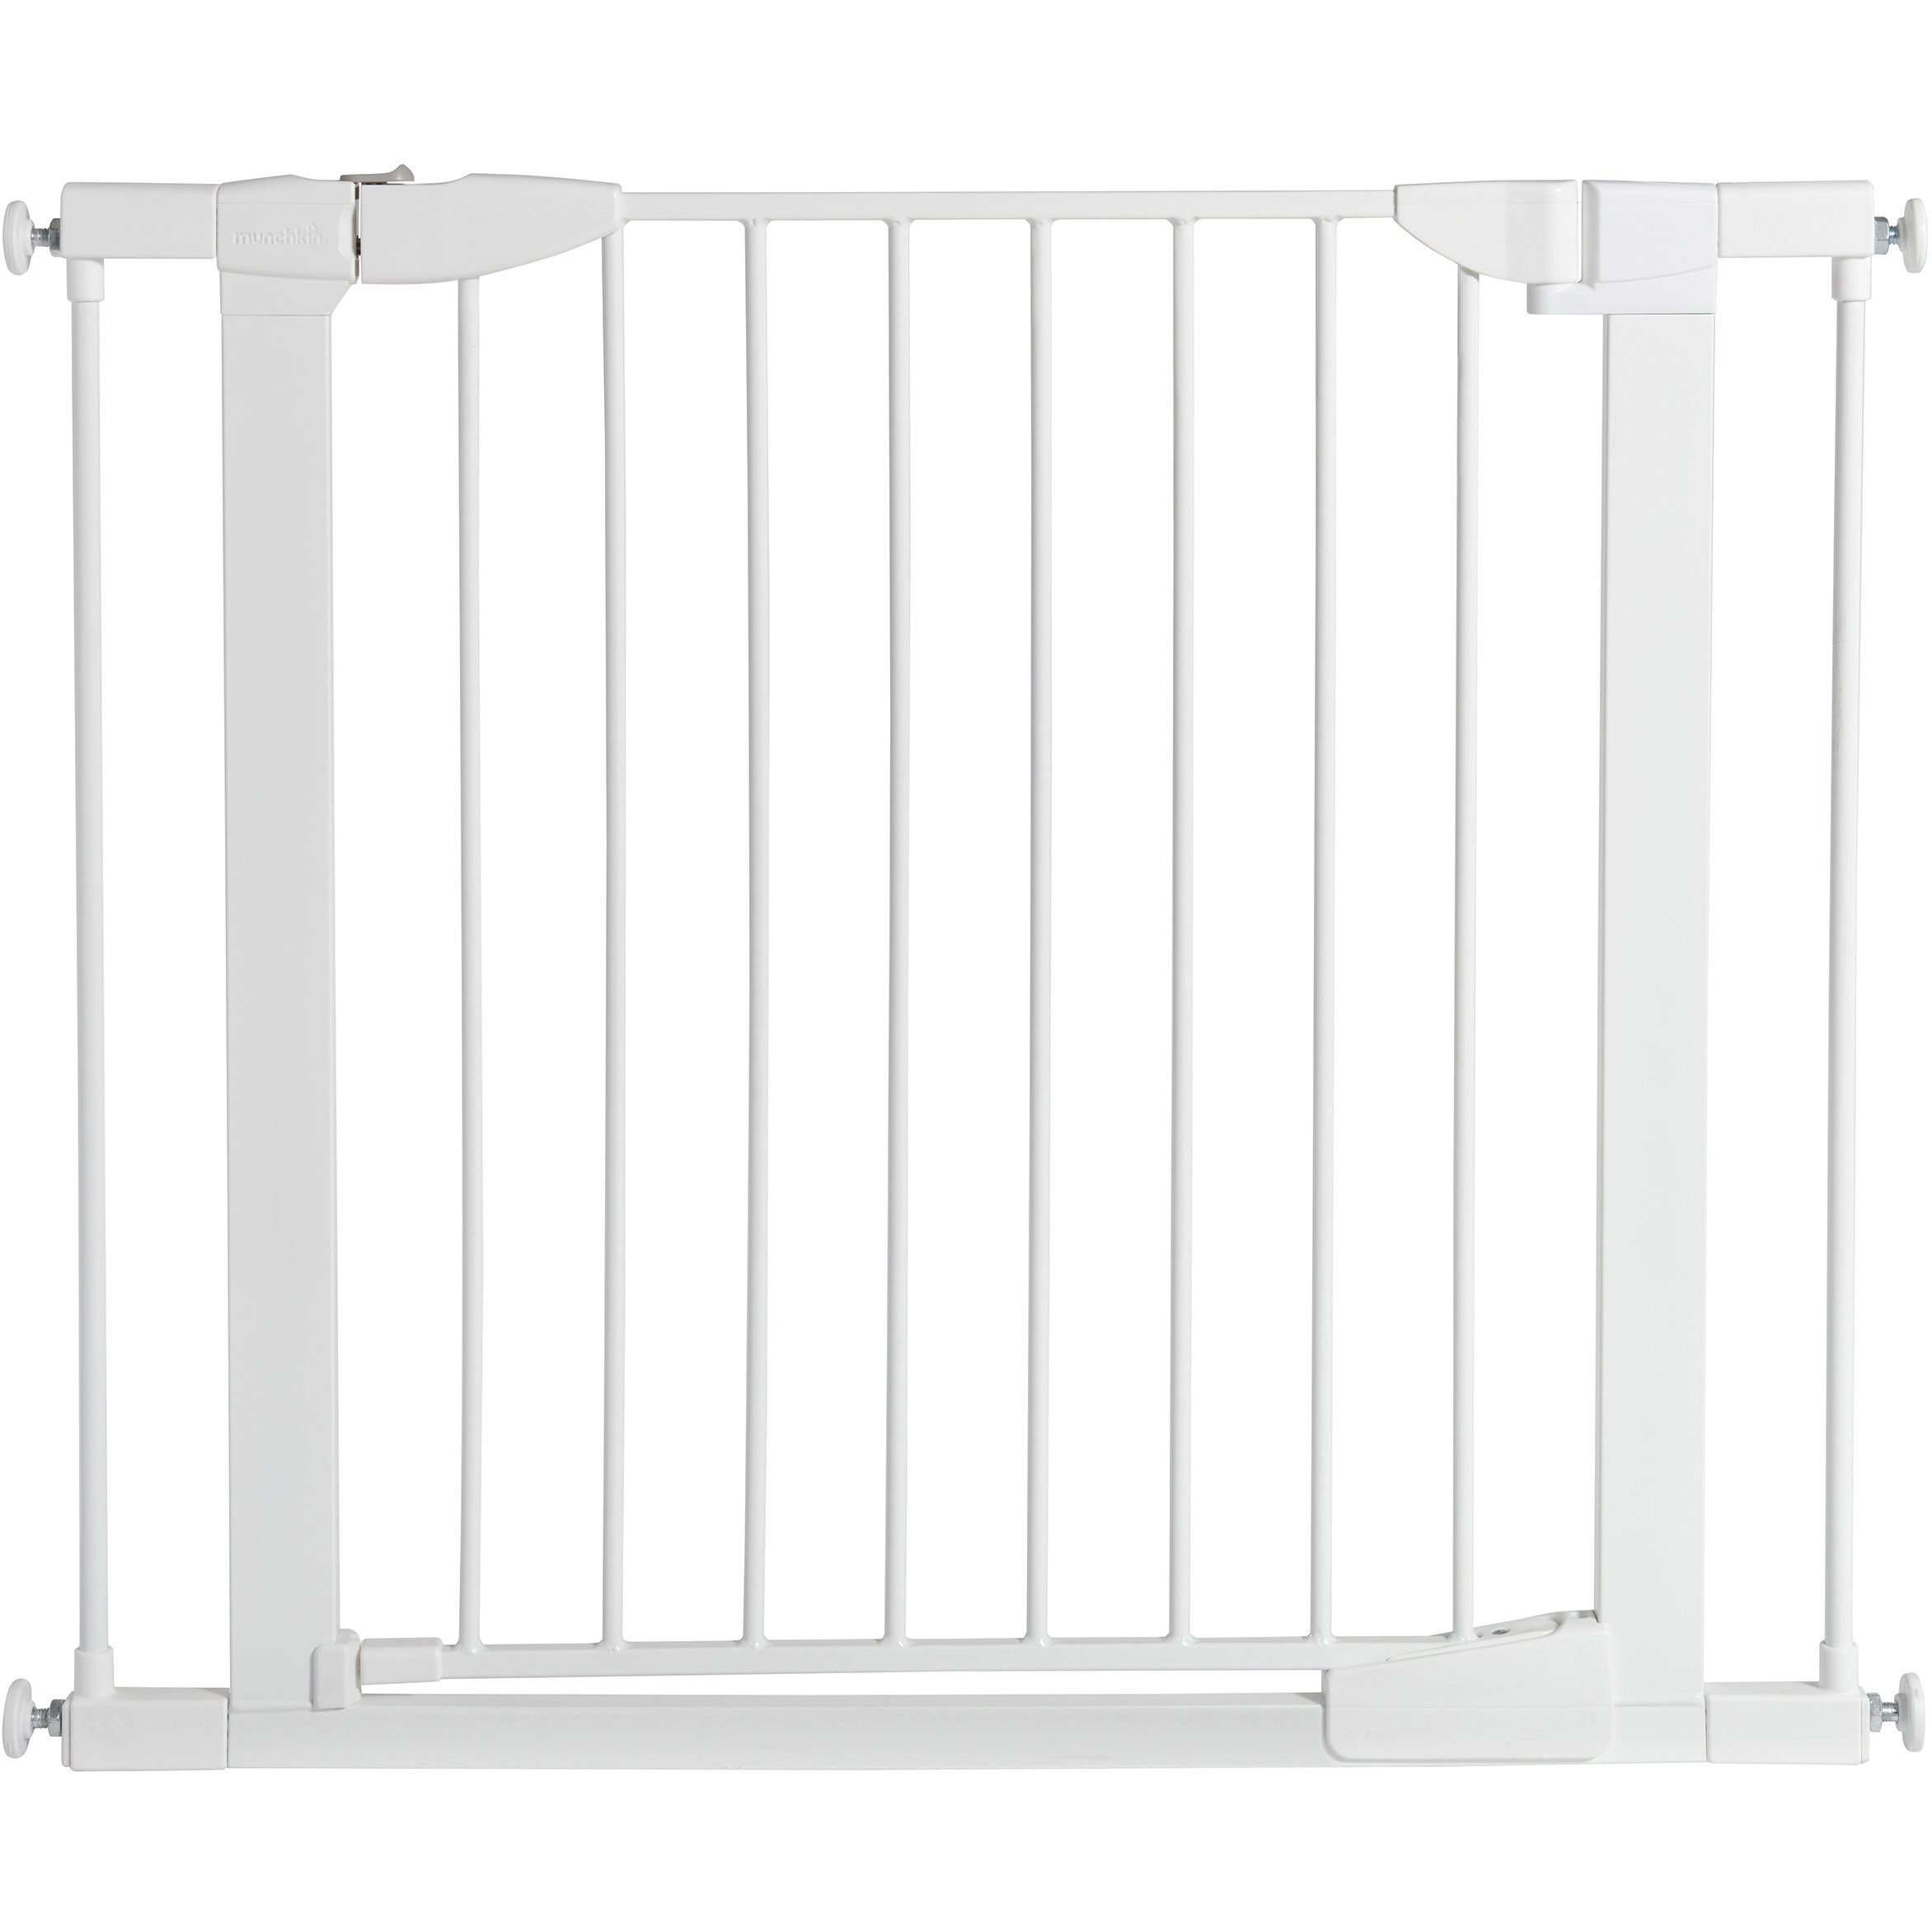 Munchkin Auto Close Pressure Mount Baby Gate for Stairs, Hallways and Doors, Metal, White, Model MK0006-022 by Munchkin